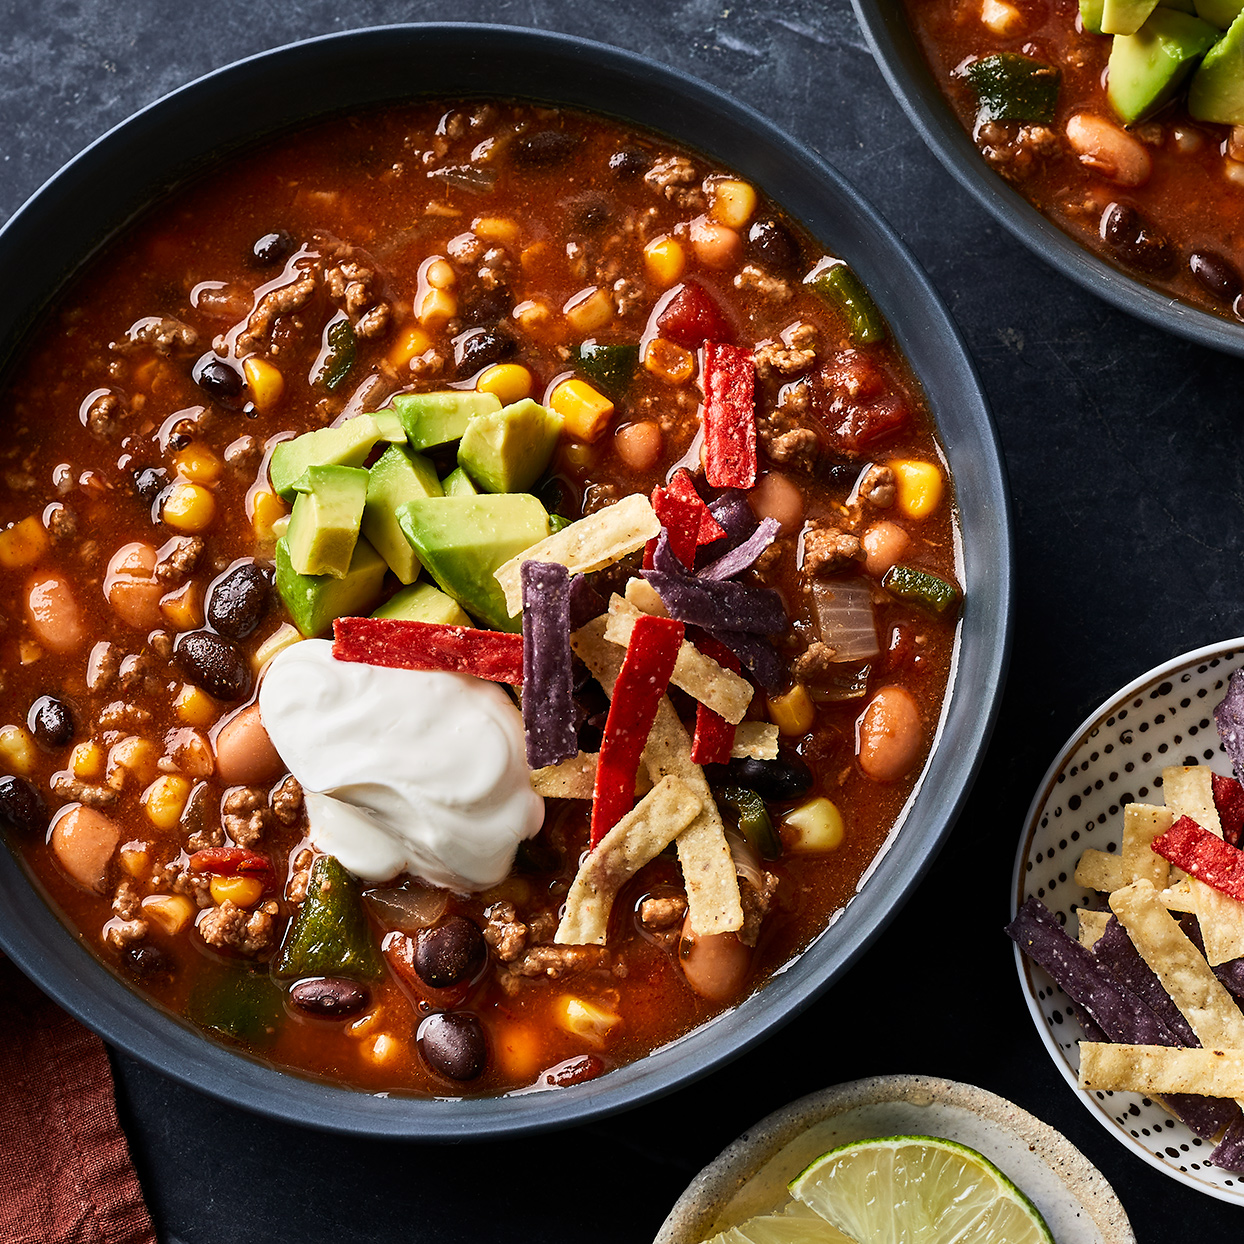 This taco soup is filled with quintessential taco ingredients and flavors--from two types of hearty beans, to corn and ground beef--but it's the toppings that really make this soup stand out. Better yet, this healthy soup is easy to make and leftovers freeze beautifully for later. Source: EatingWell.com, September 2019